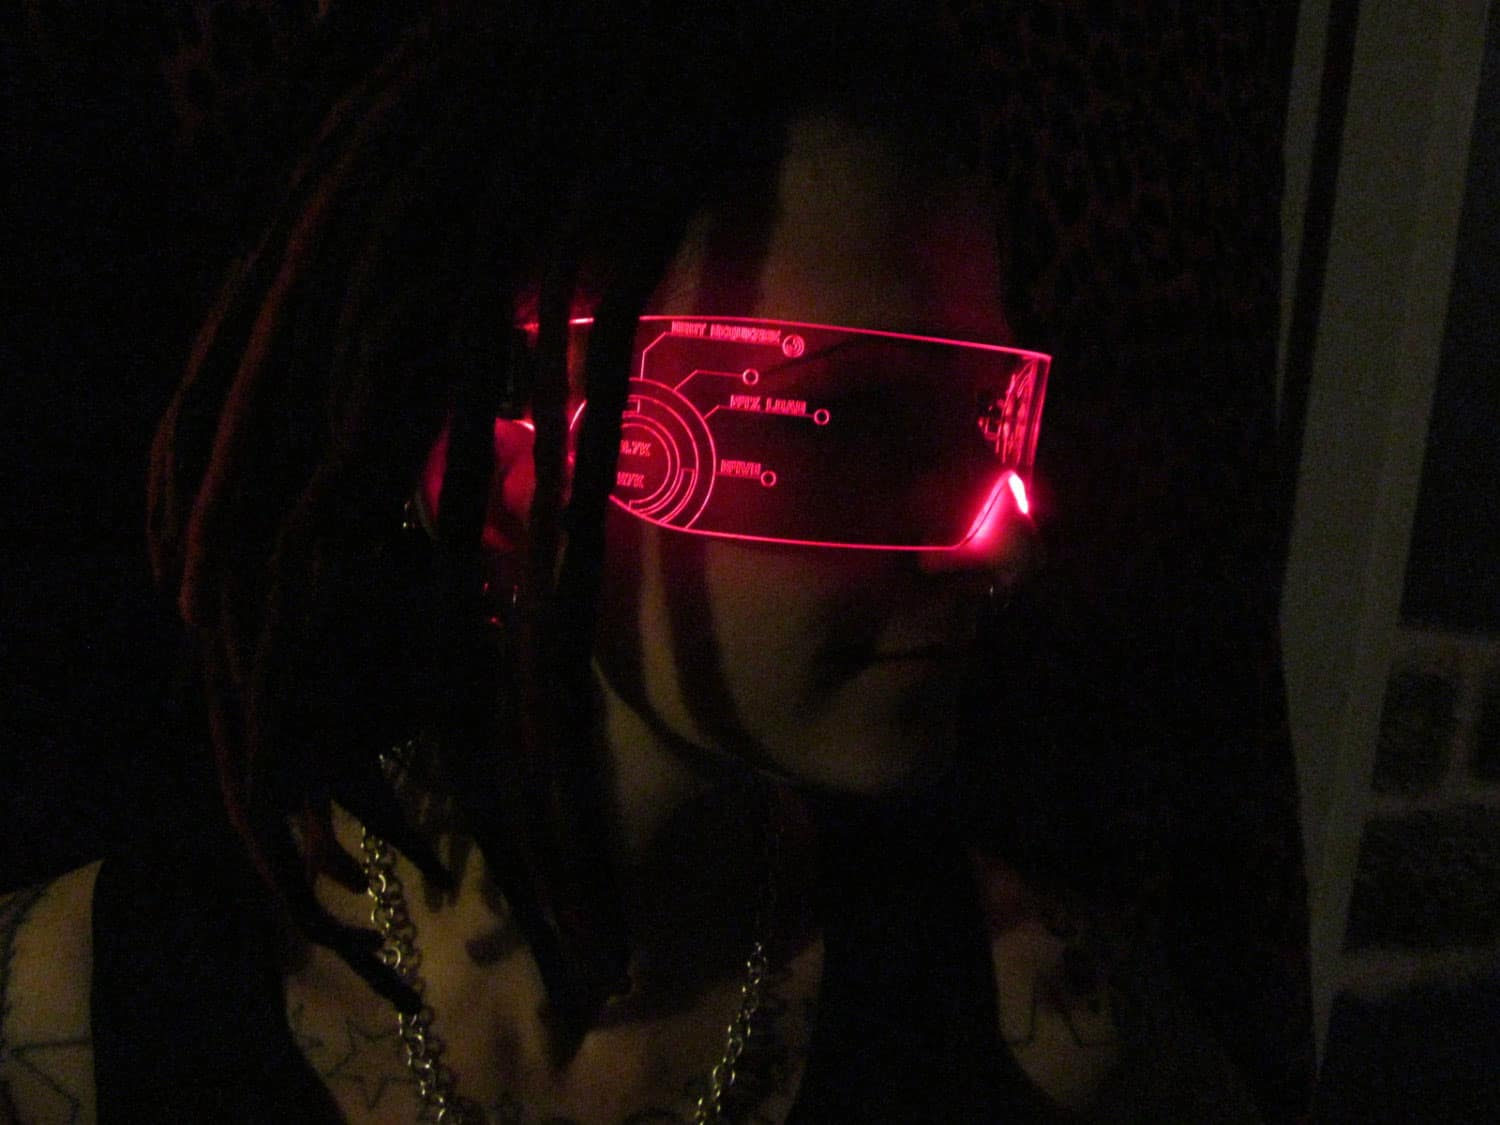 Illumination Cyber Wear Illuminated Cyber Goth Visor Futuristic Fashion Wear